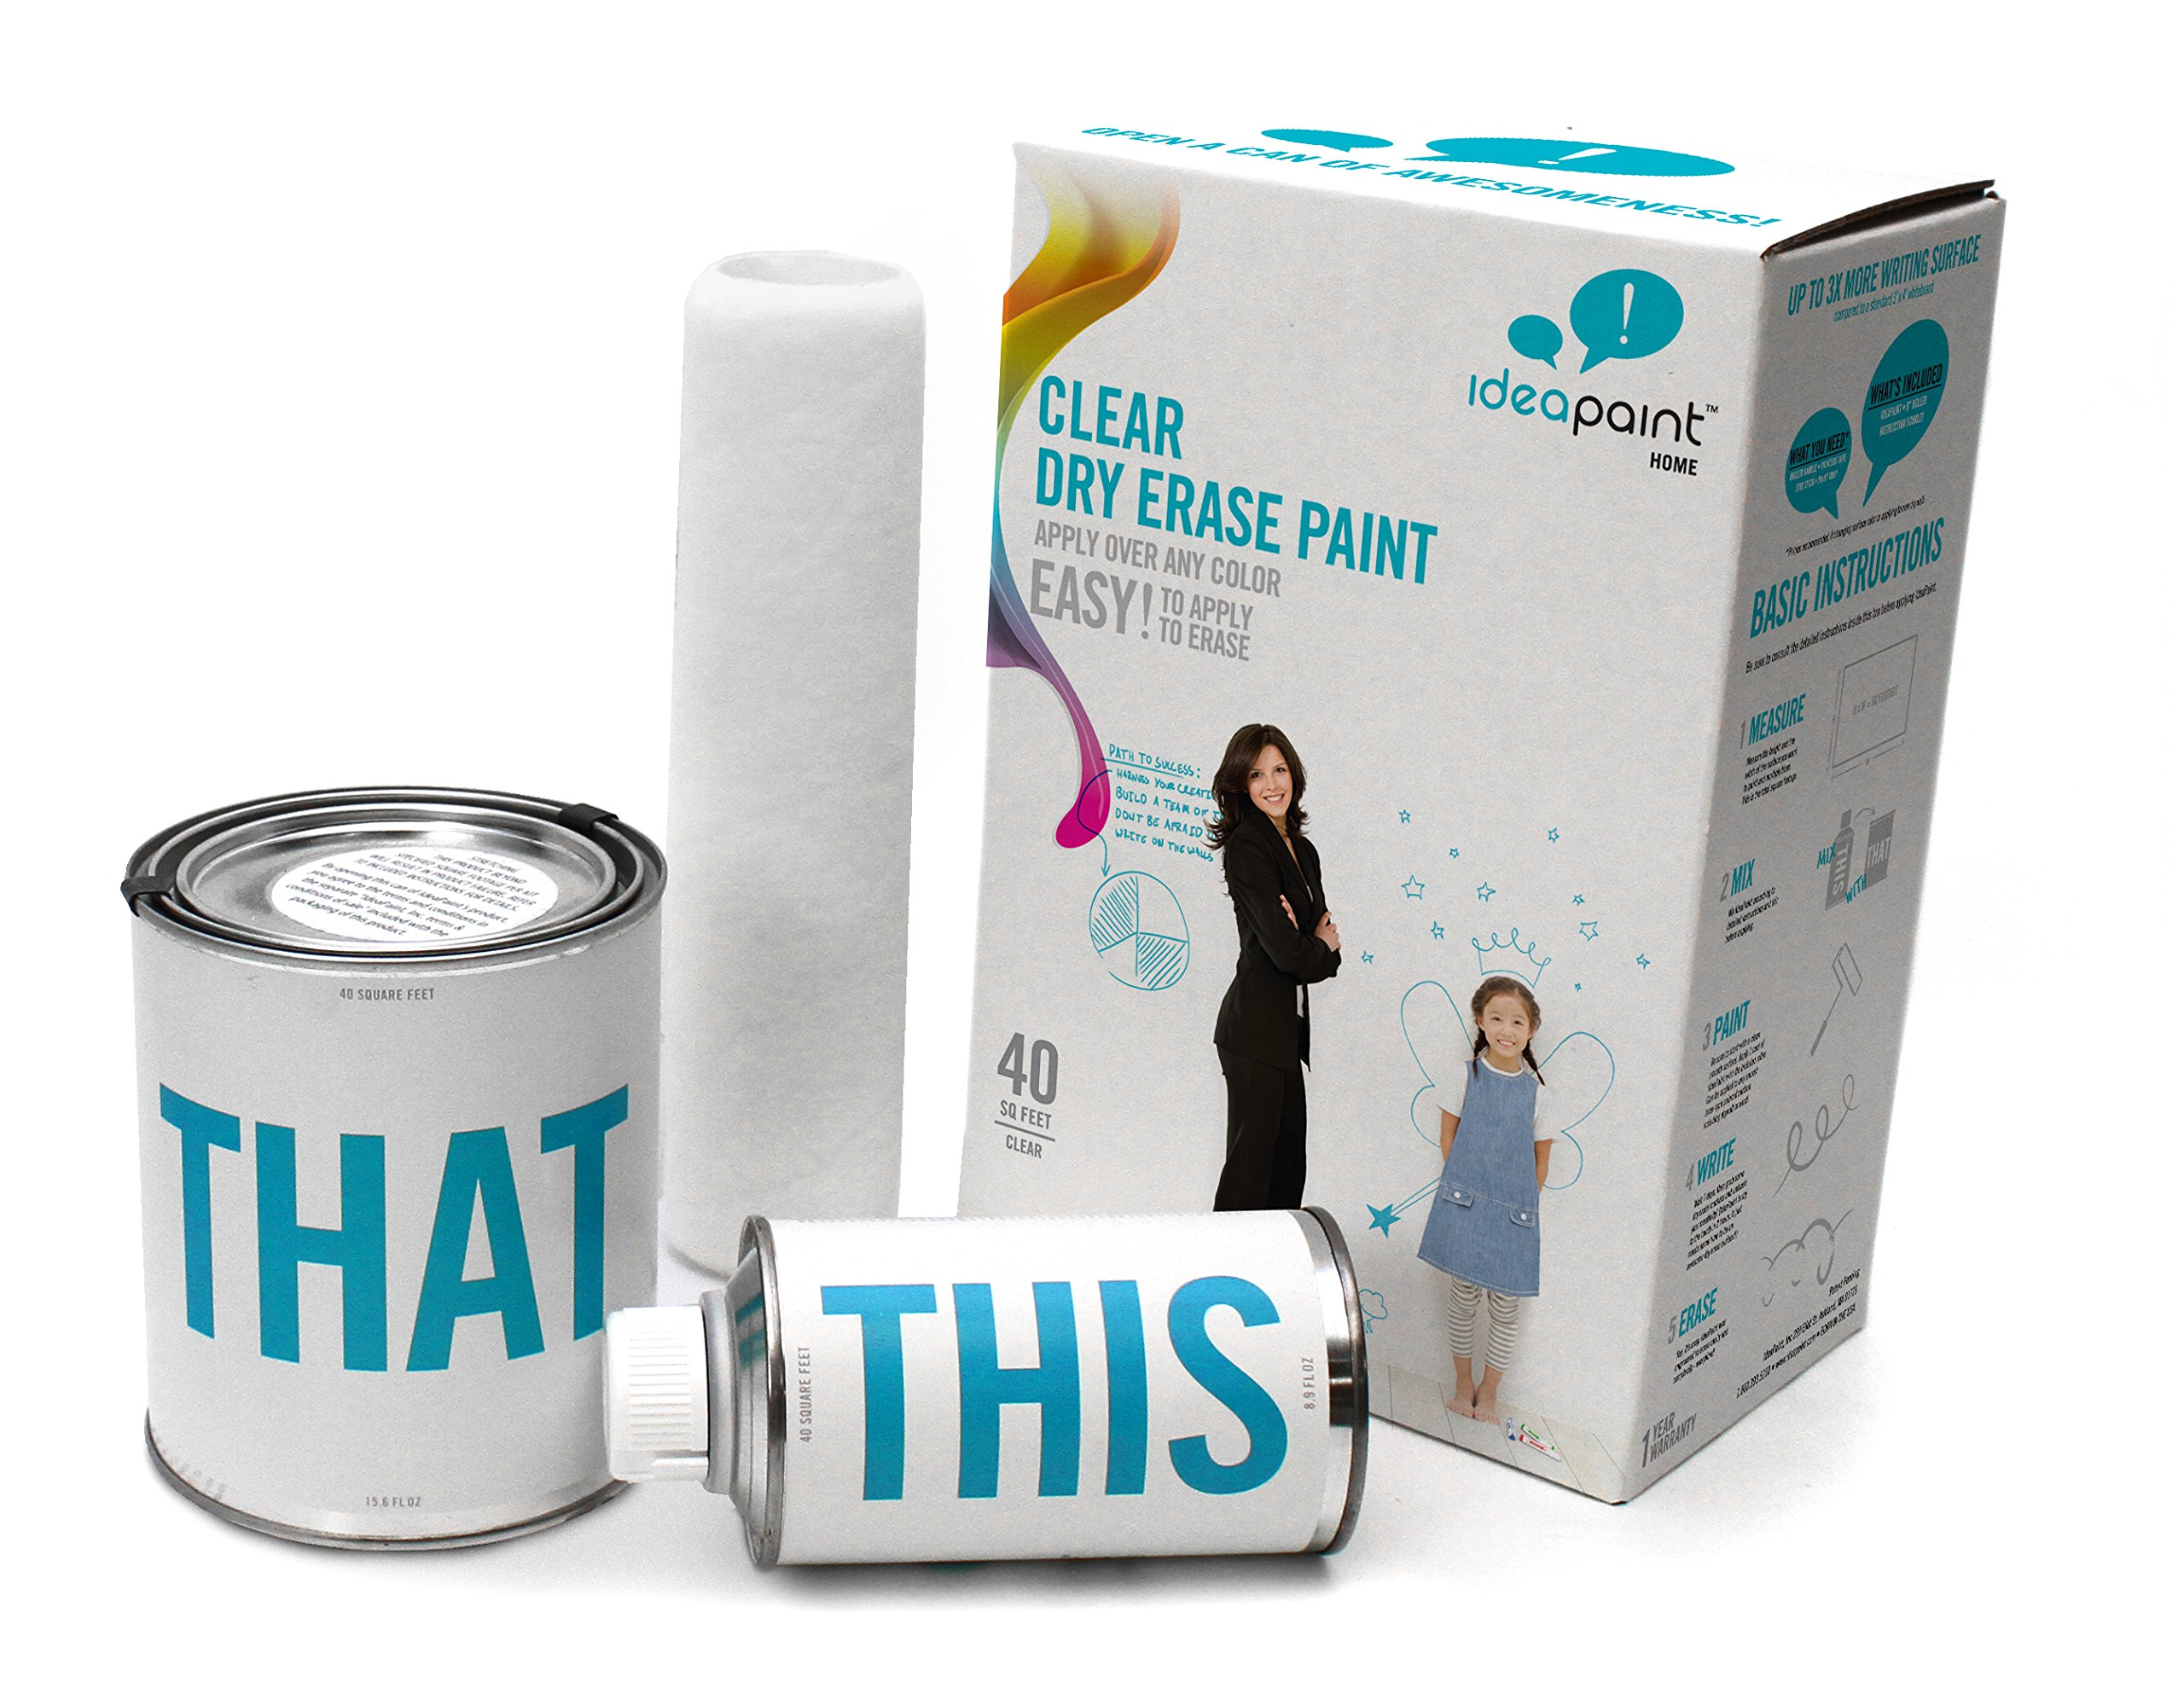 IdeaPaint HOME - Clear Dry Erase Paint Kit, 40 sq ft